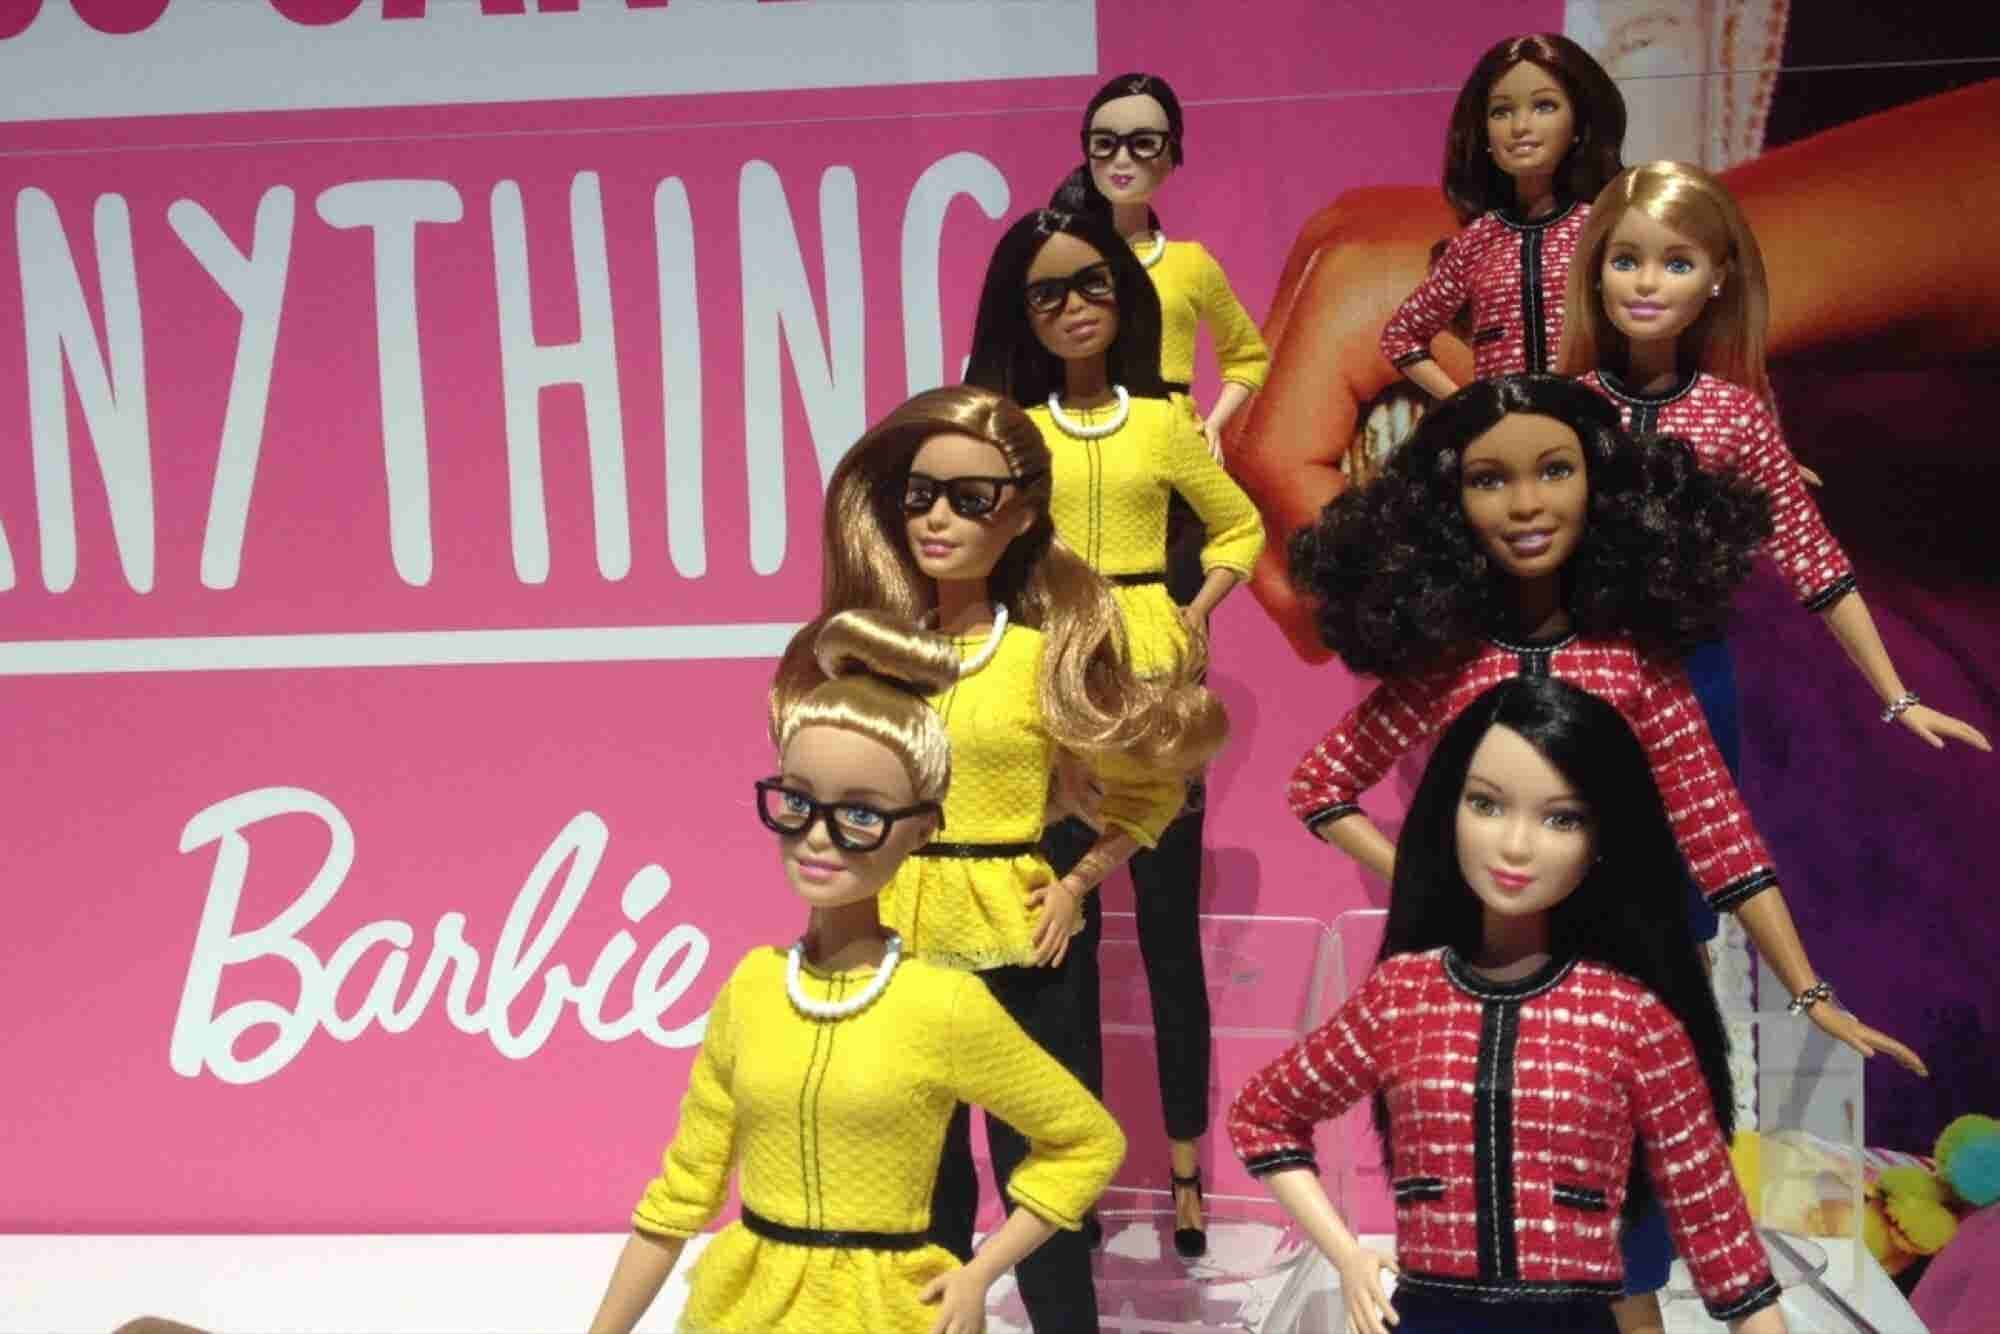 Vice President Barbie Still Available to Run in 2016